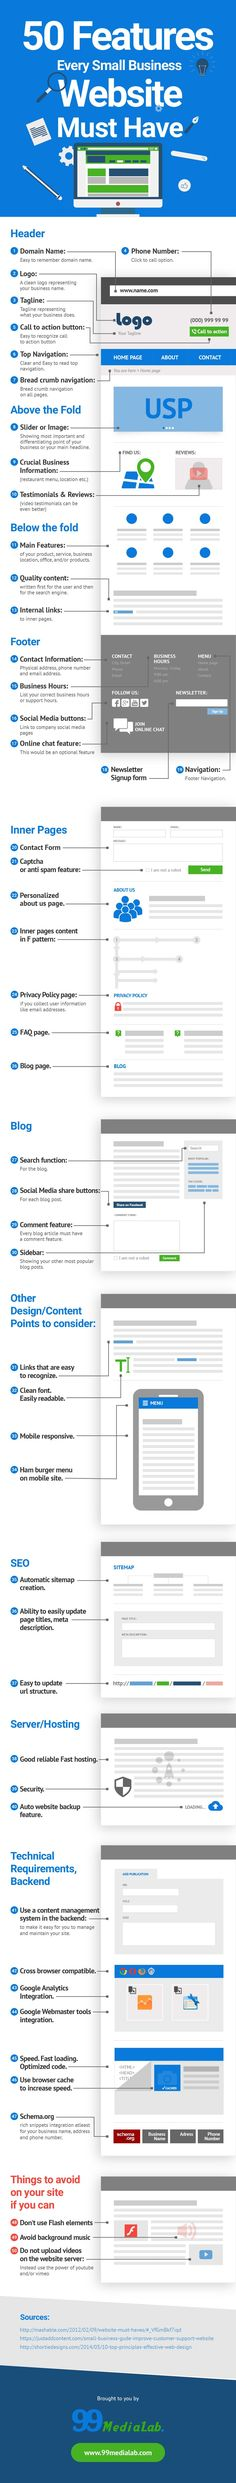 50 Features Website Must Have (Infographic)